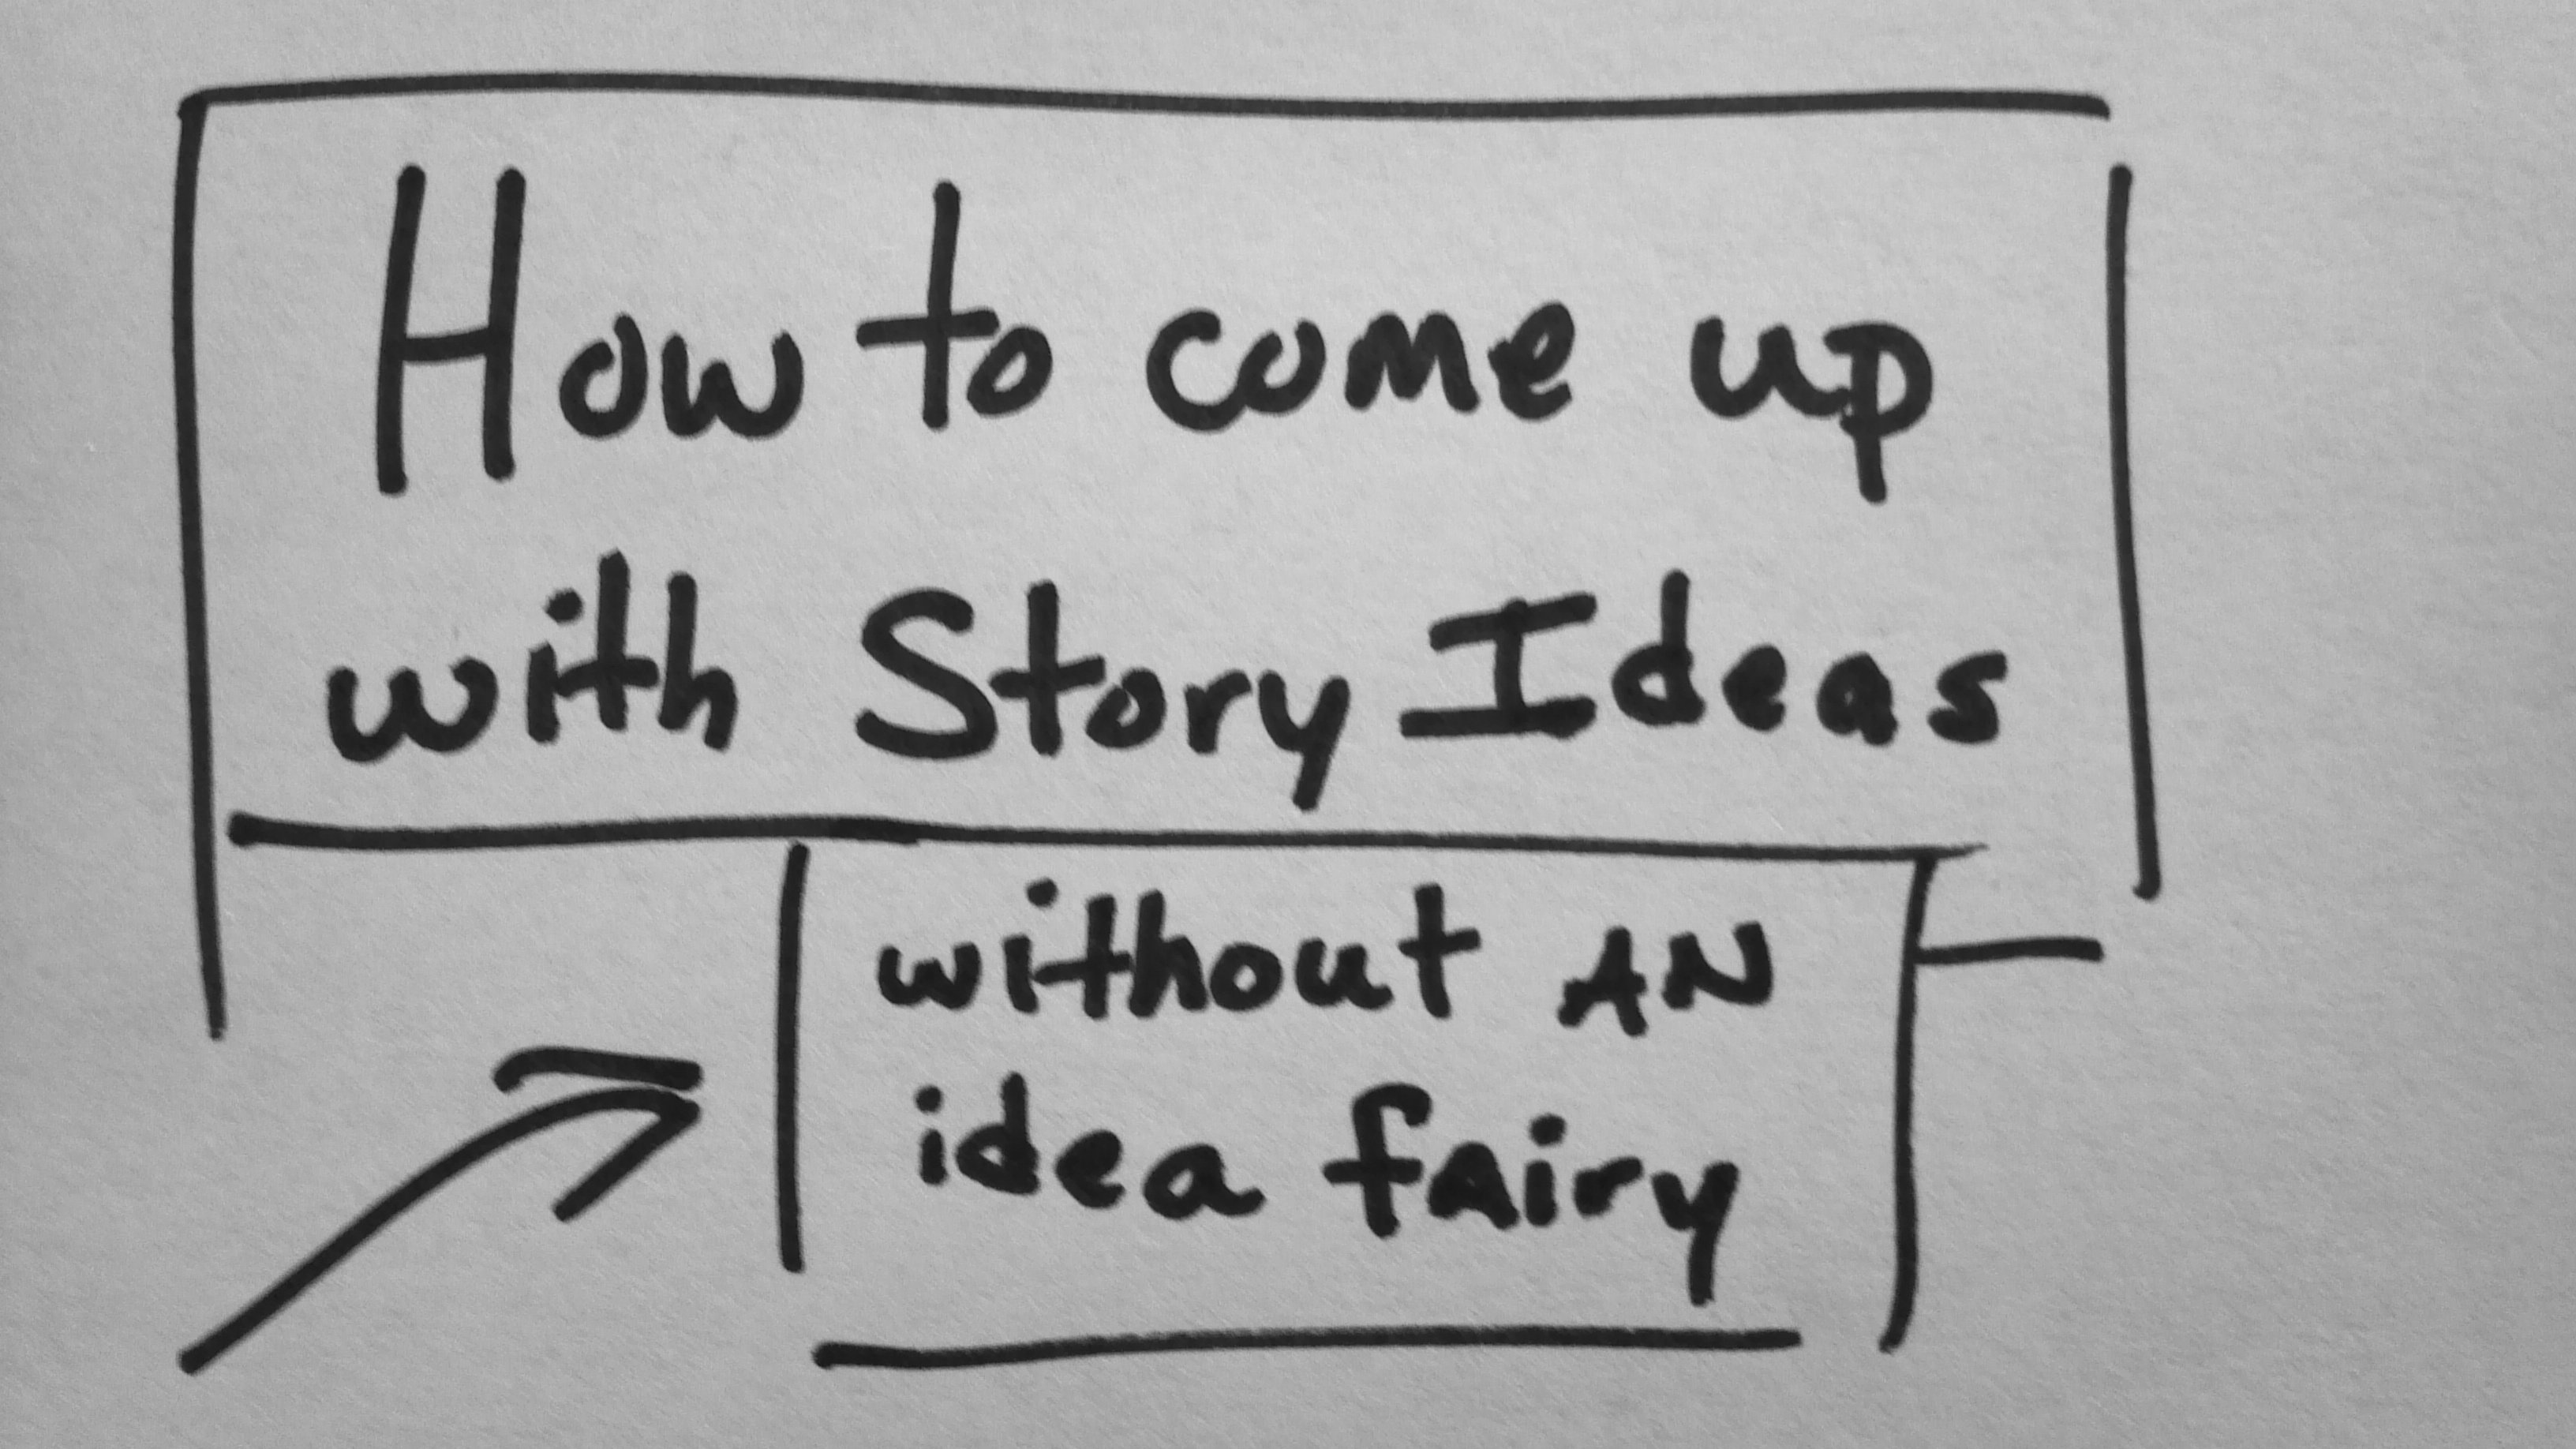 story planning - how to come up with story ideas